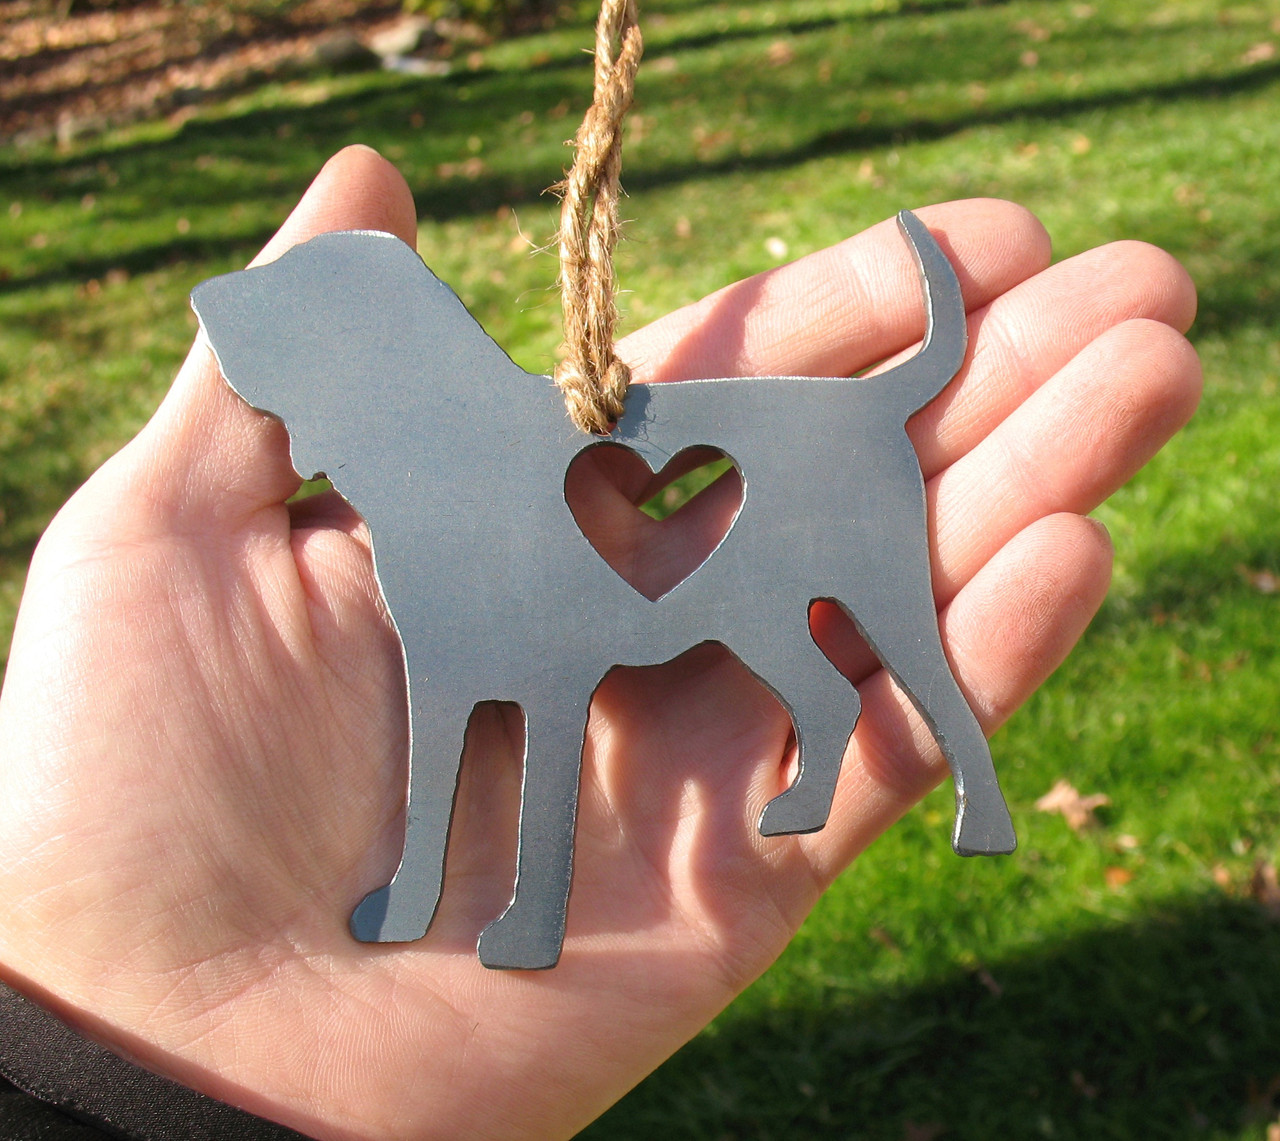 Bloodhound Dog Pet Loss Gift Ornament - Pet Memorial - Dog Sympathy Remembrance Gift - Metal Dog Christmas Ornament